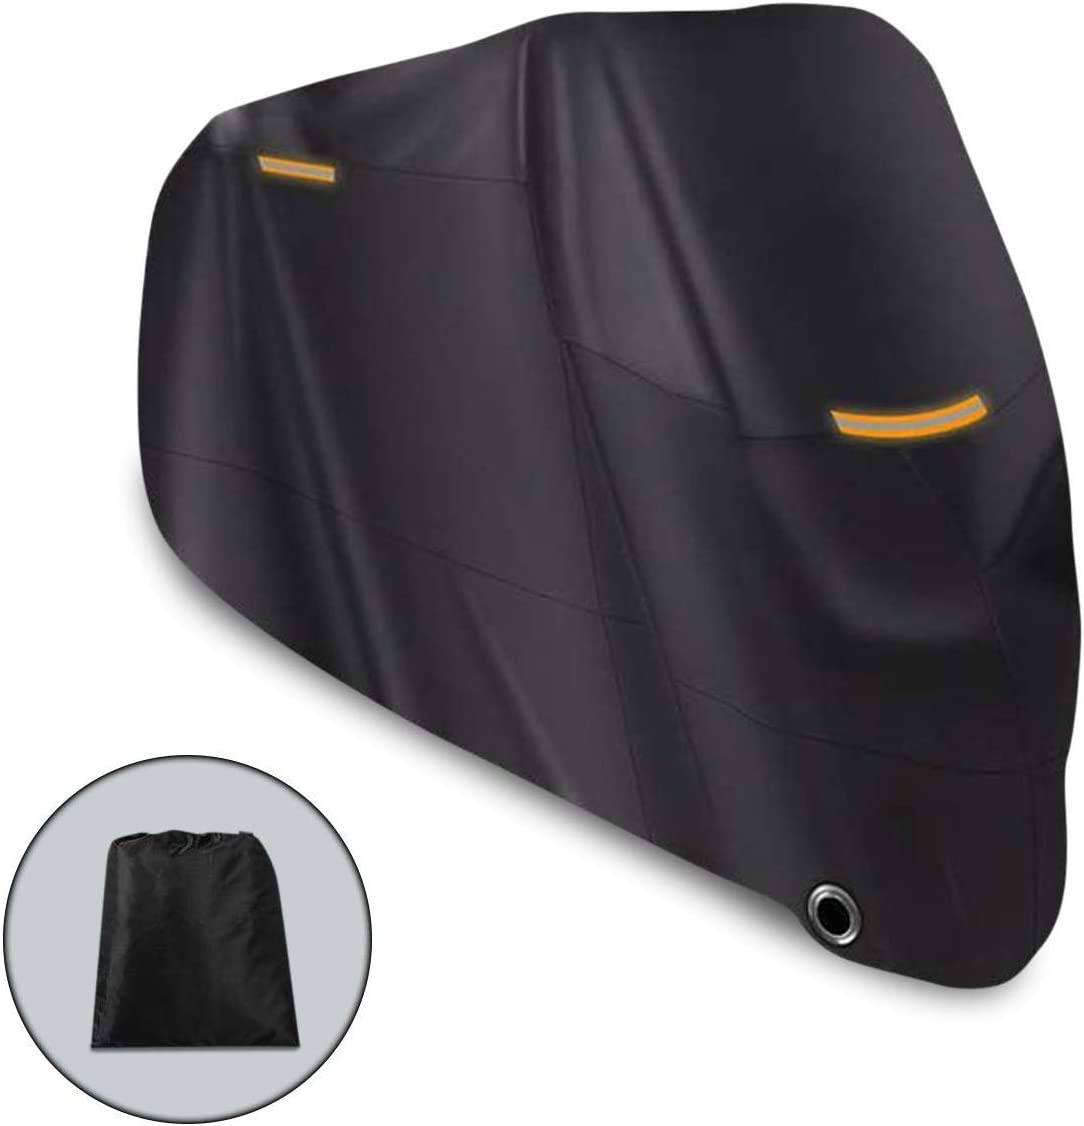 Riider Original Premium Quality Outdoor Waterproof Motorcycle Cover Heavy Duty Durable Thick 210D Fabric Motorbike Cover All Season Anti UV Scratch Heat-Resistant Outdoor Protection 104x41x50 inch